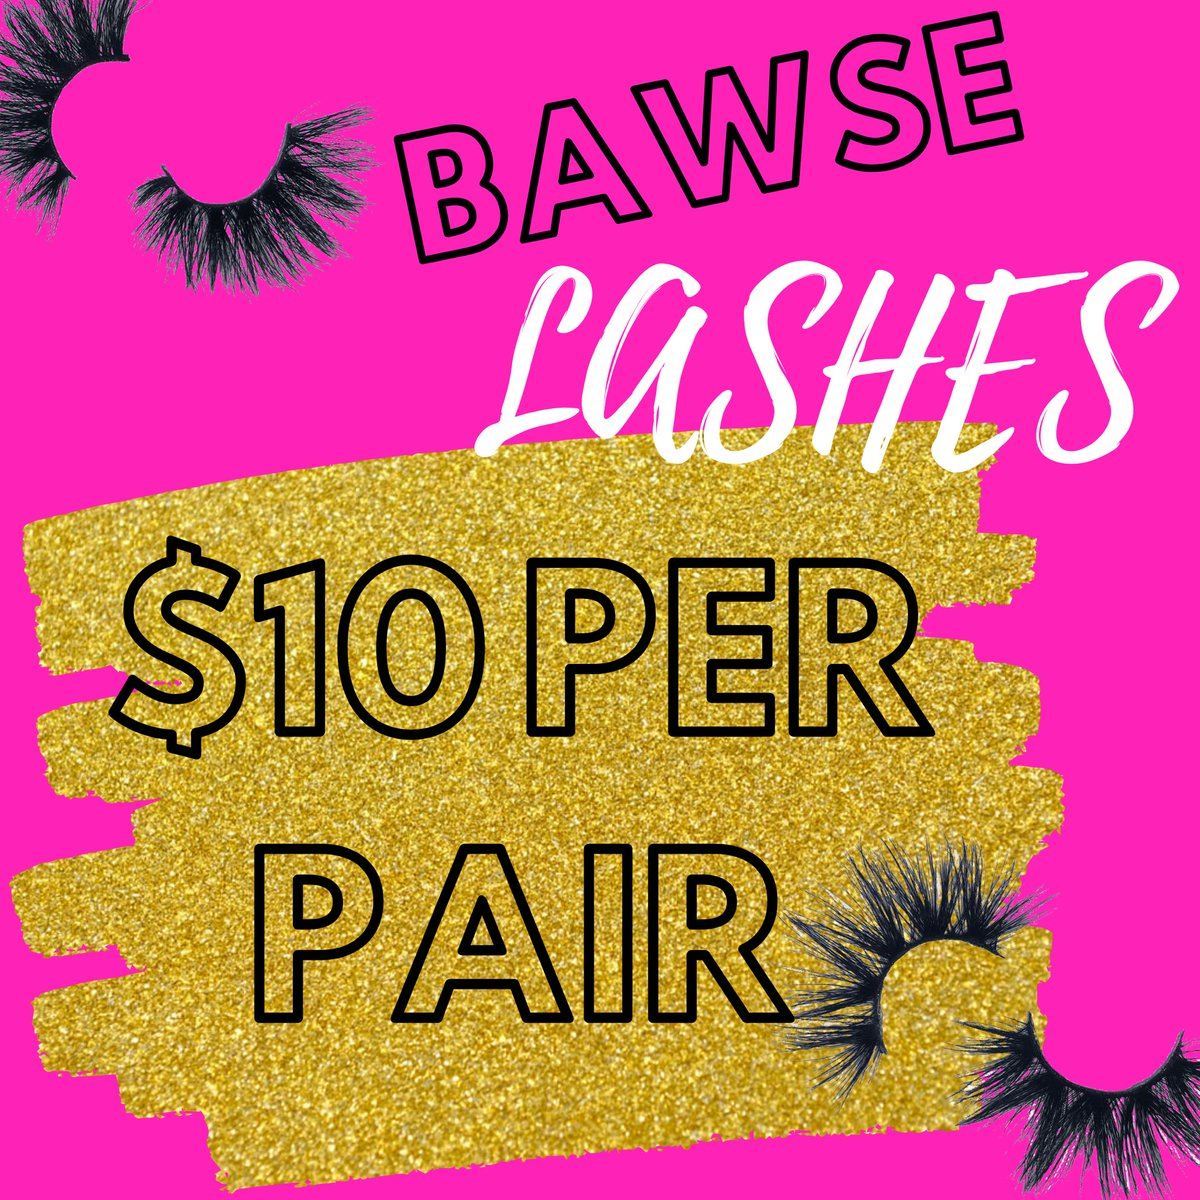 For all my lash lovers and lash addicts.I have lashes on sale for $10 I have a special discount code for 15% off for my fellow sex workers 🥰 DM me